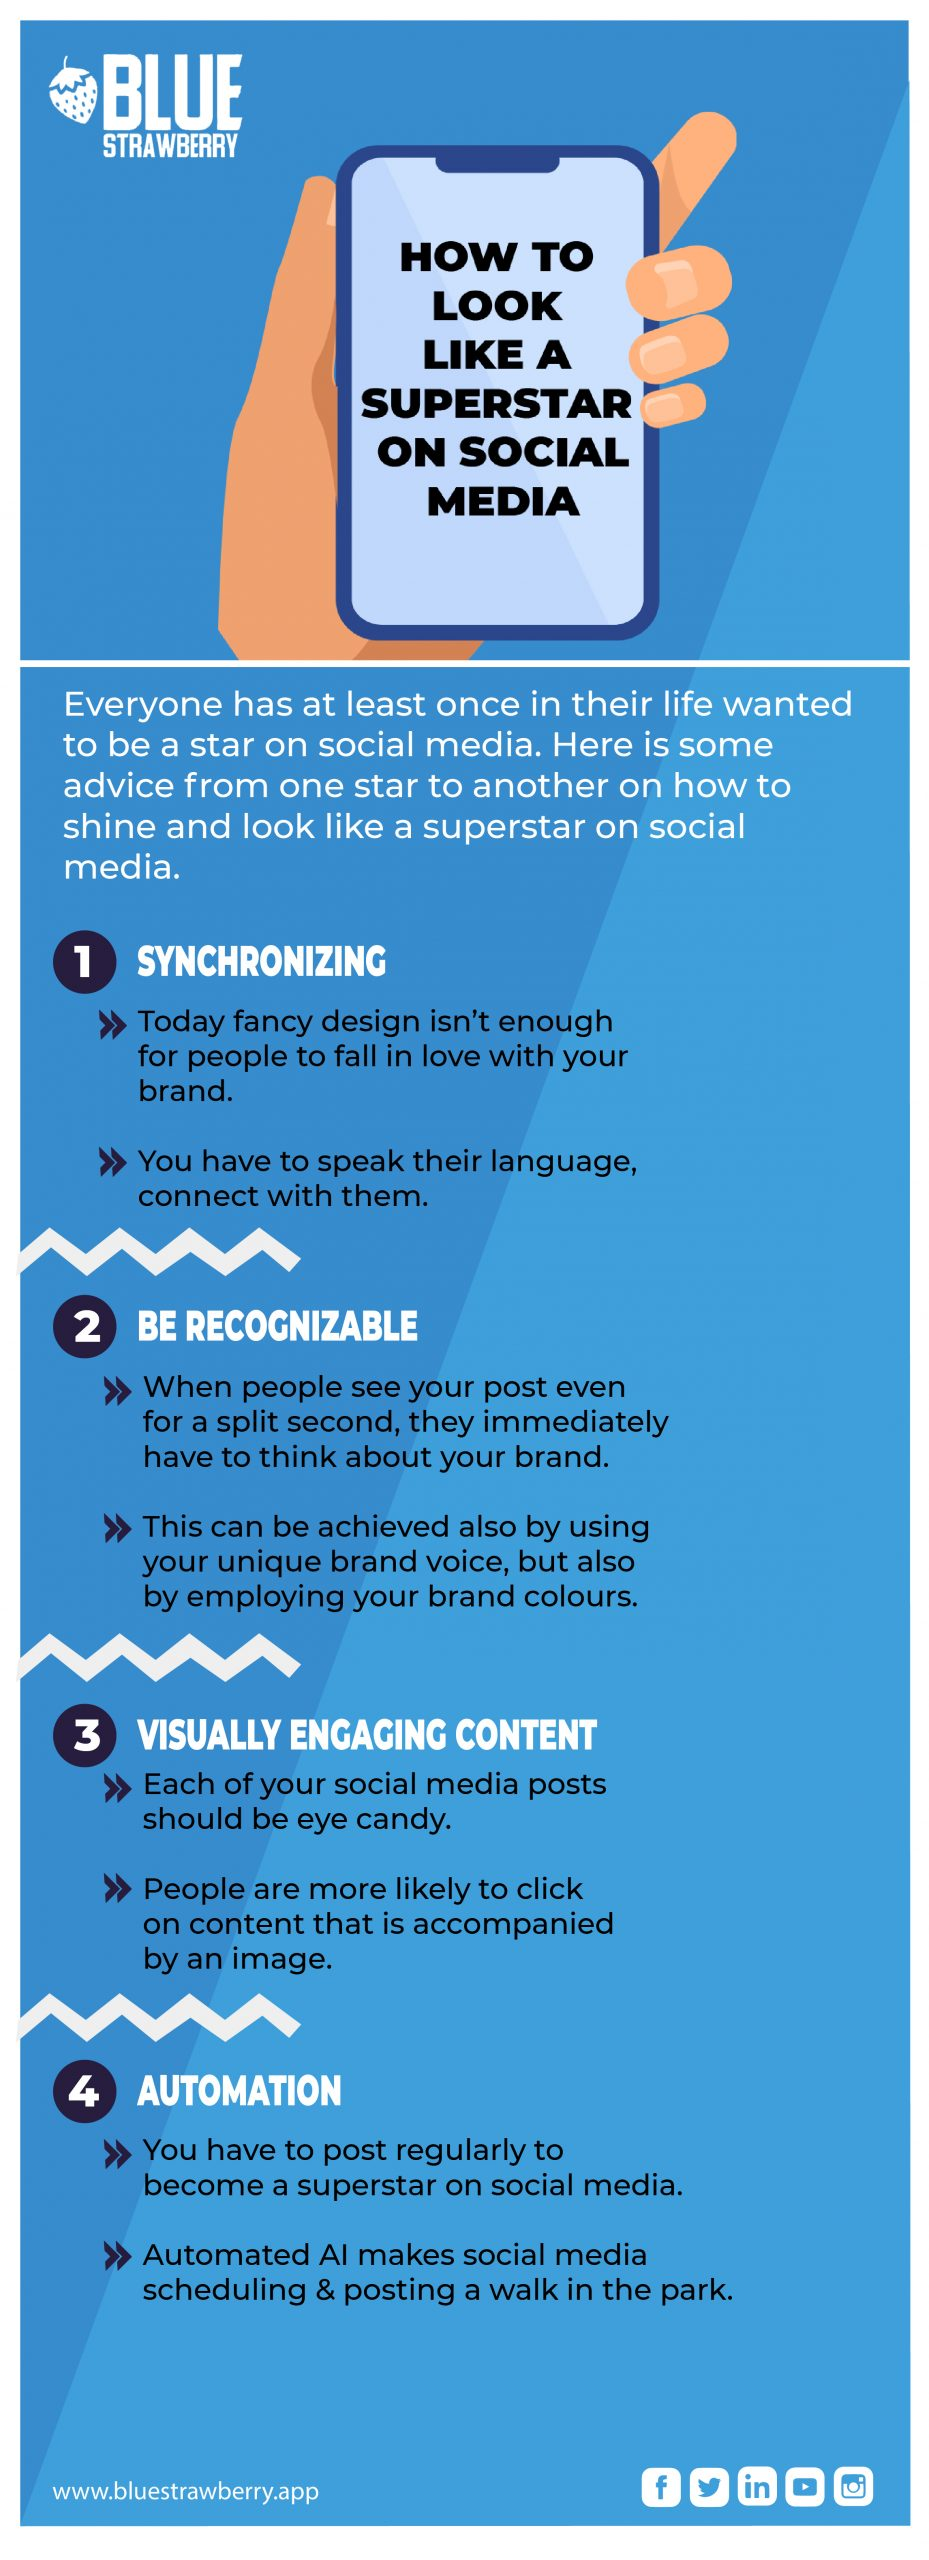 How to look like a superstar on social media infographic